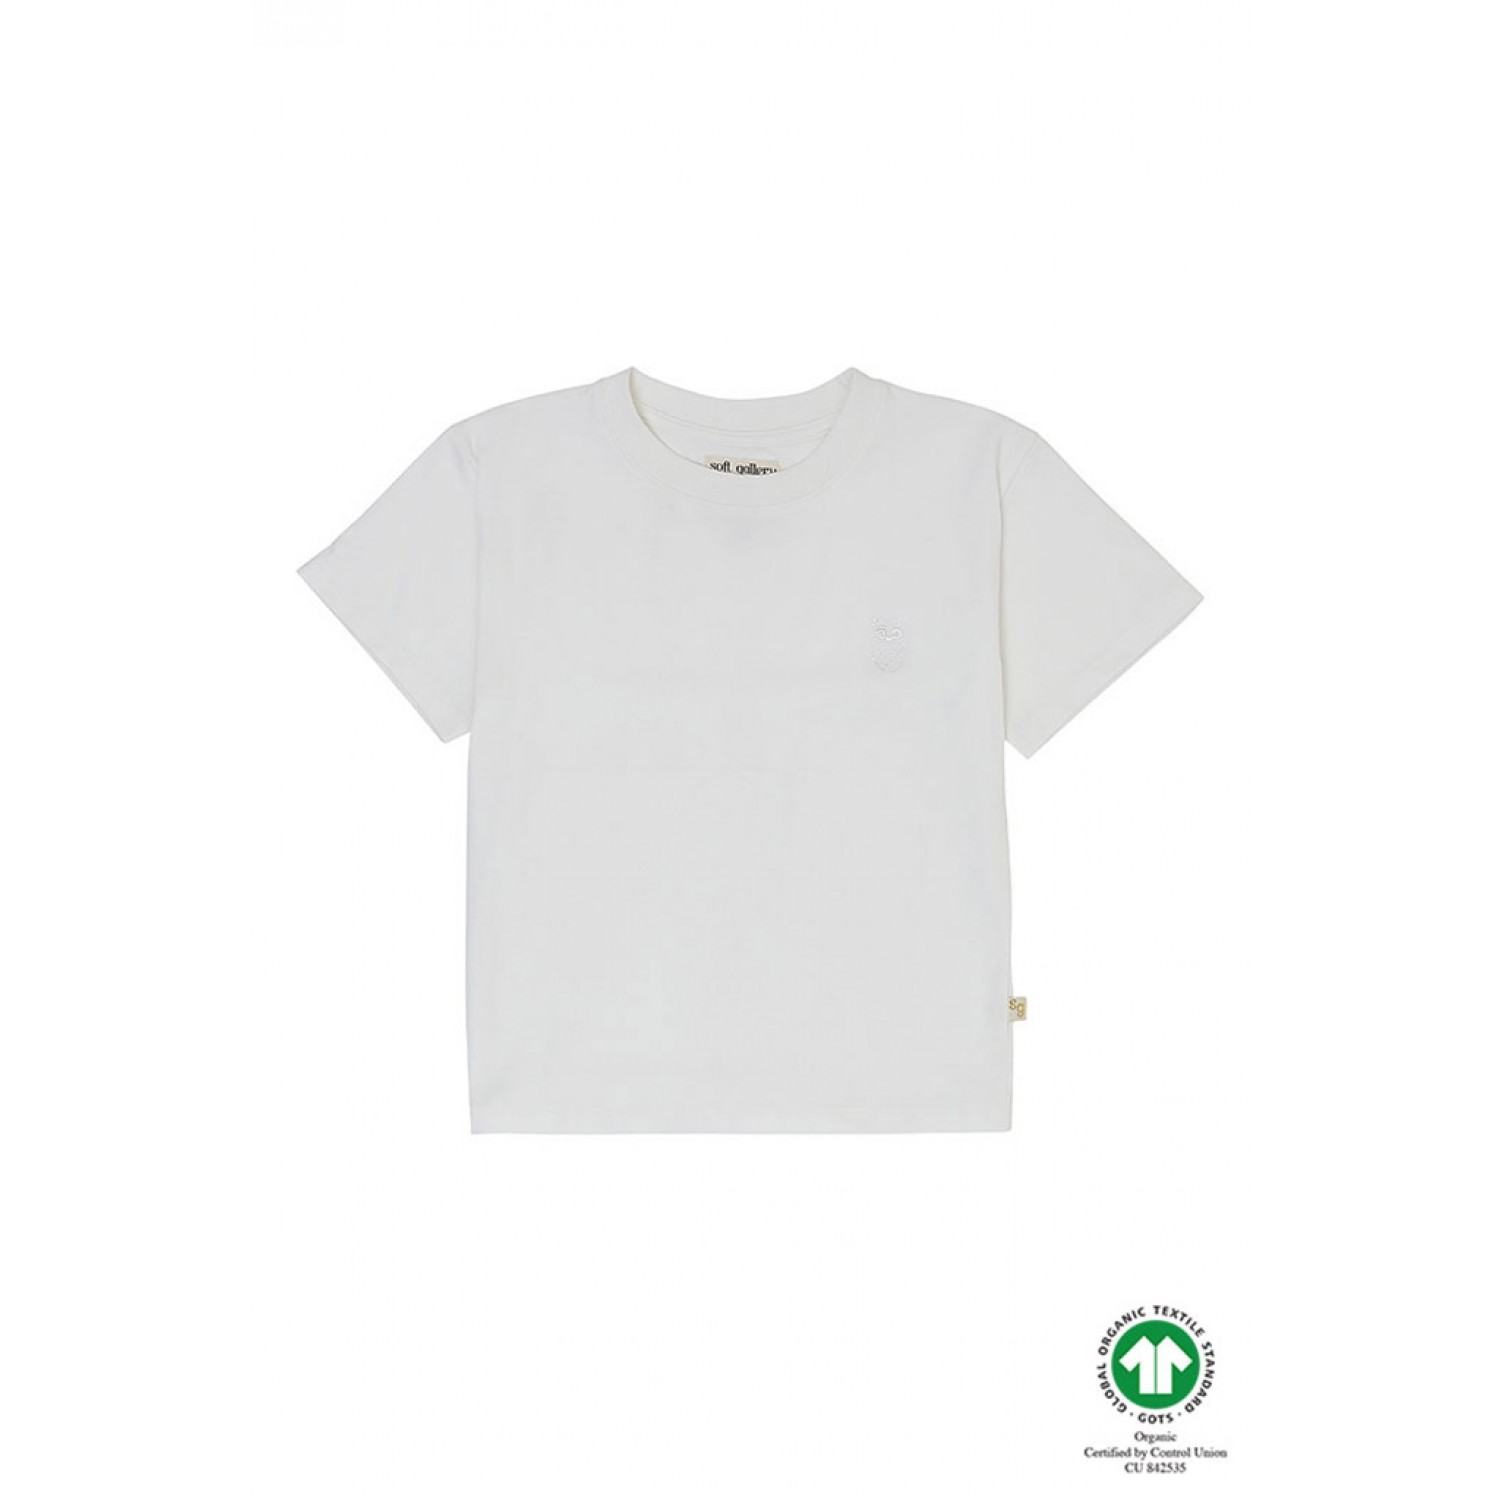 Asger T-shirt  White SOFT GALLERY